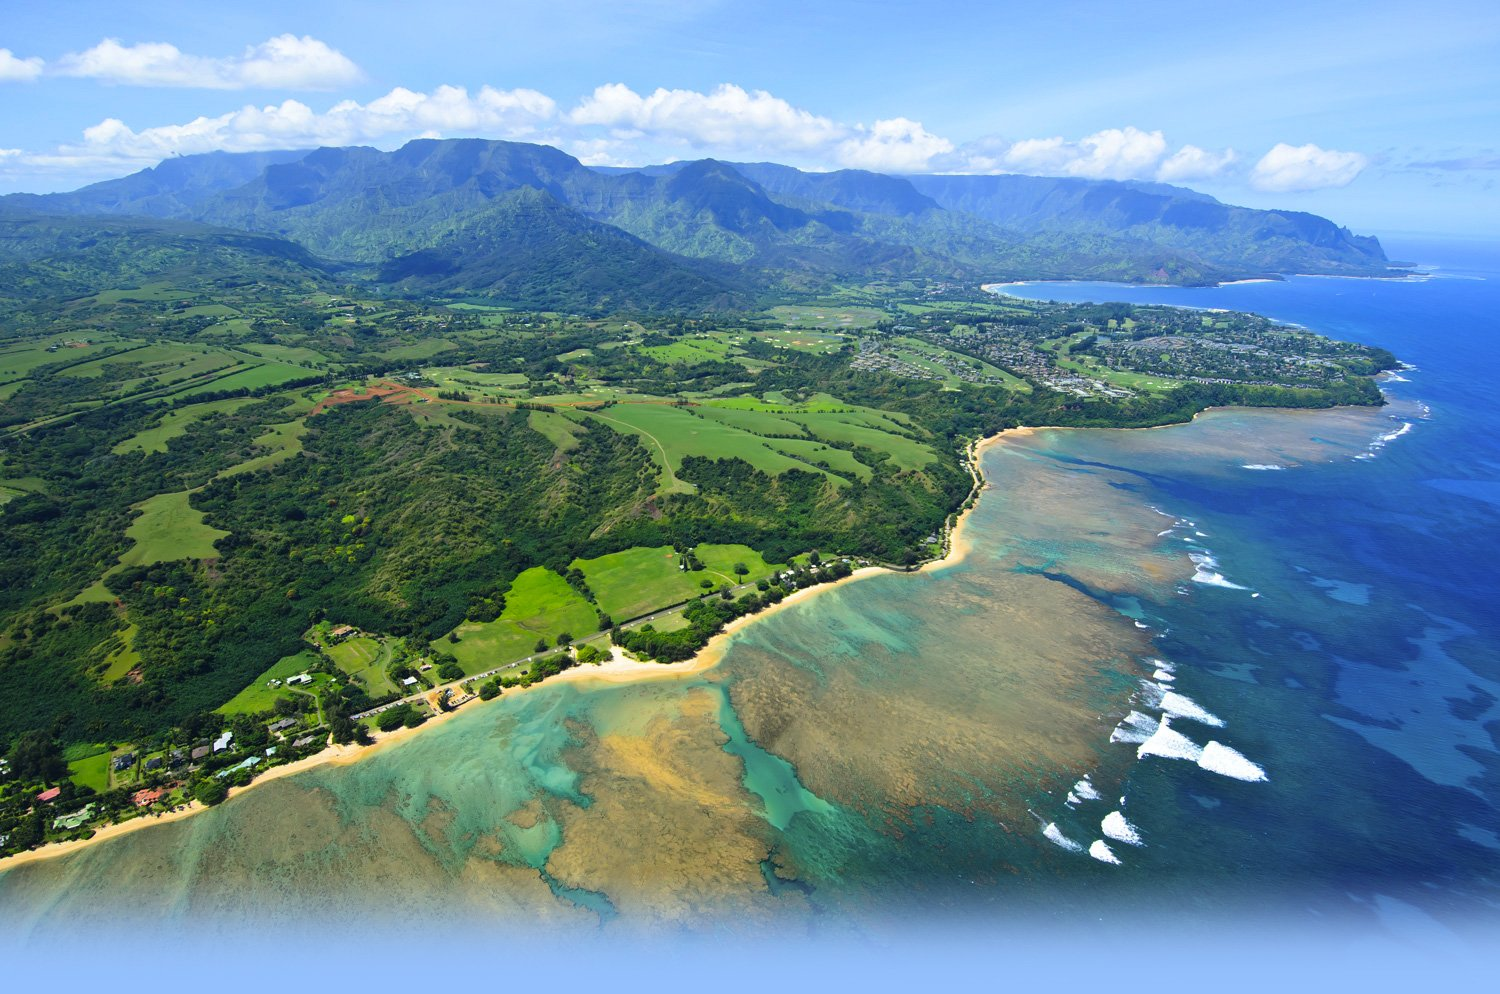 St Regis Princeville Resort, Luxury Vacation - Kauai